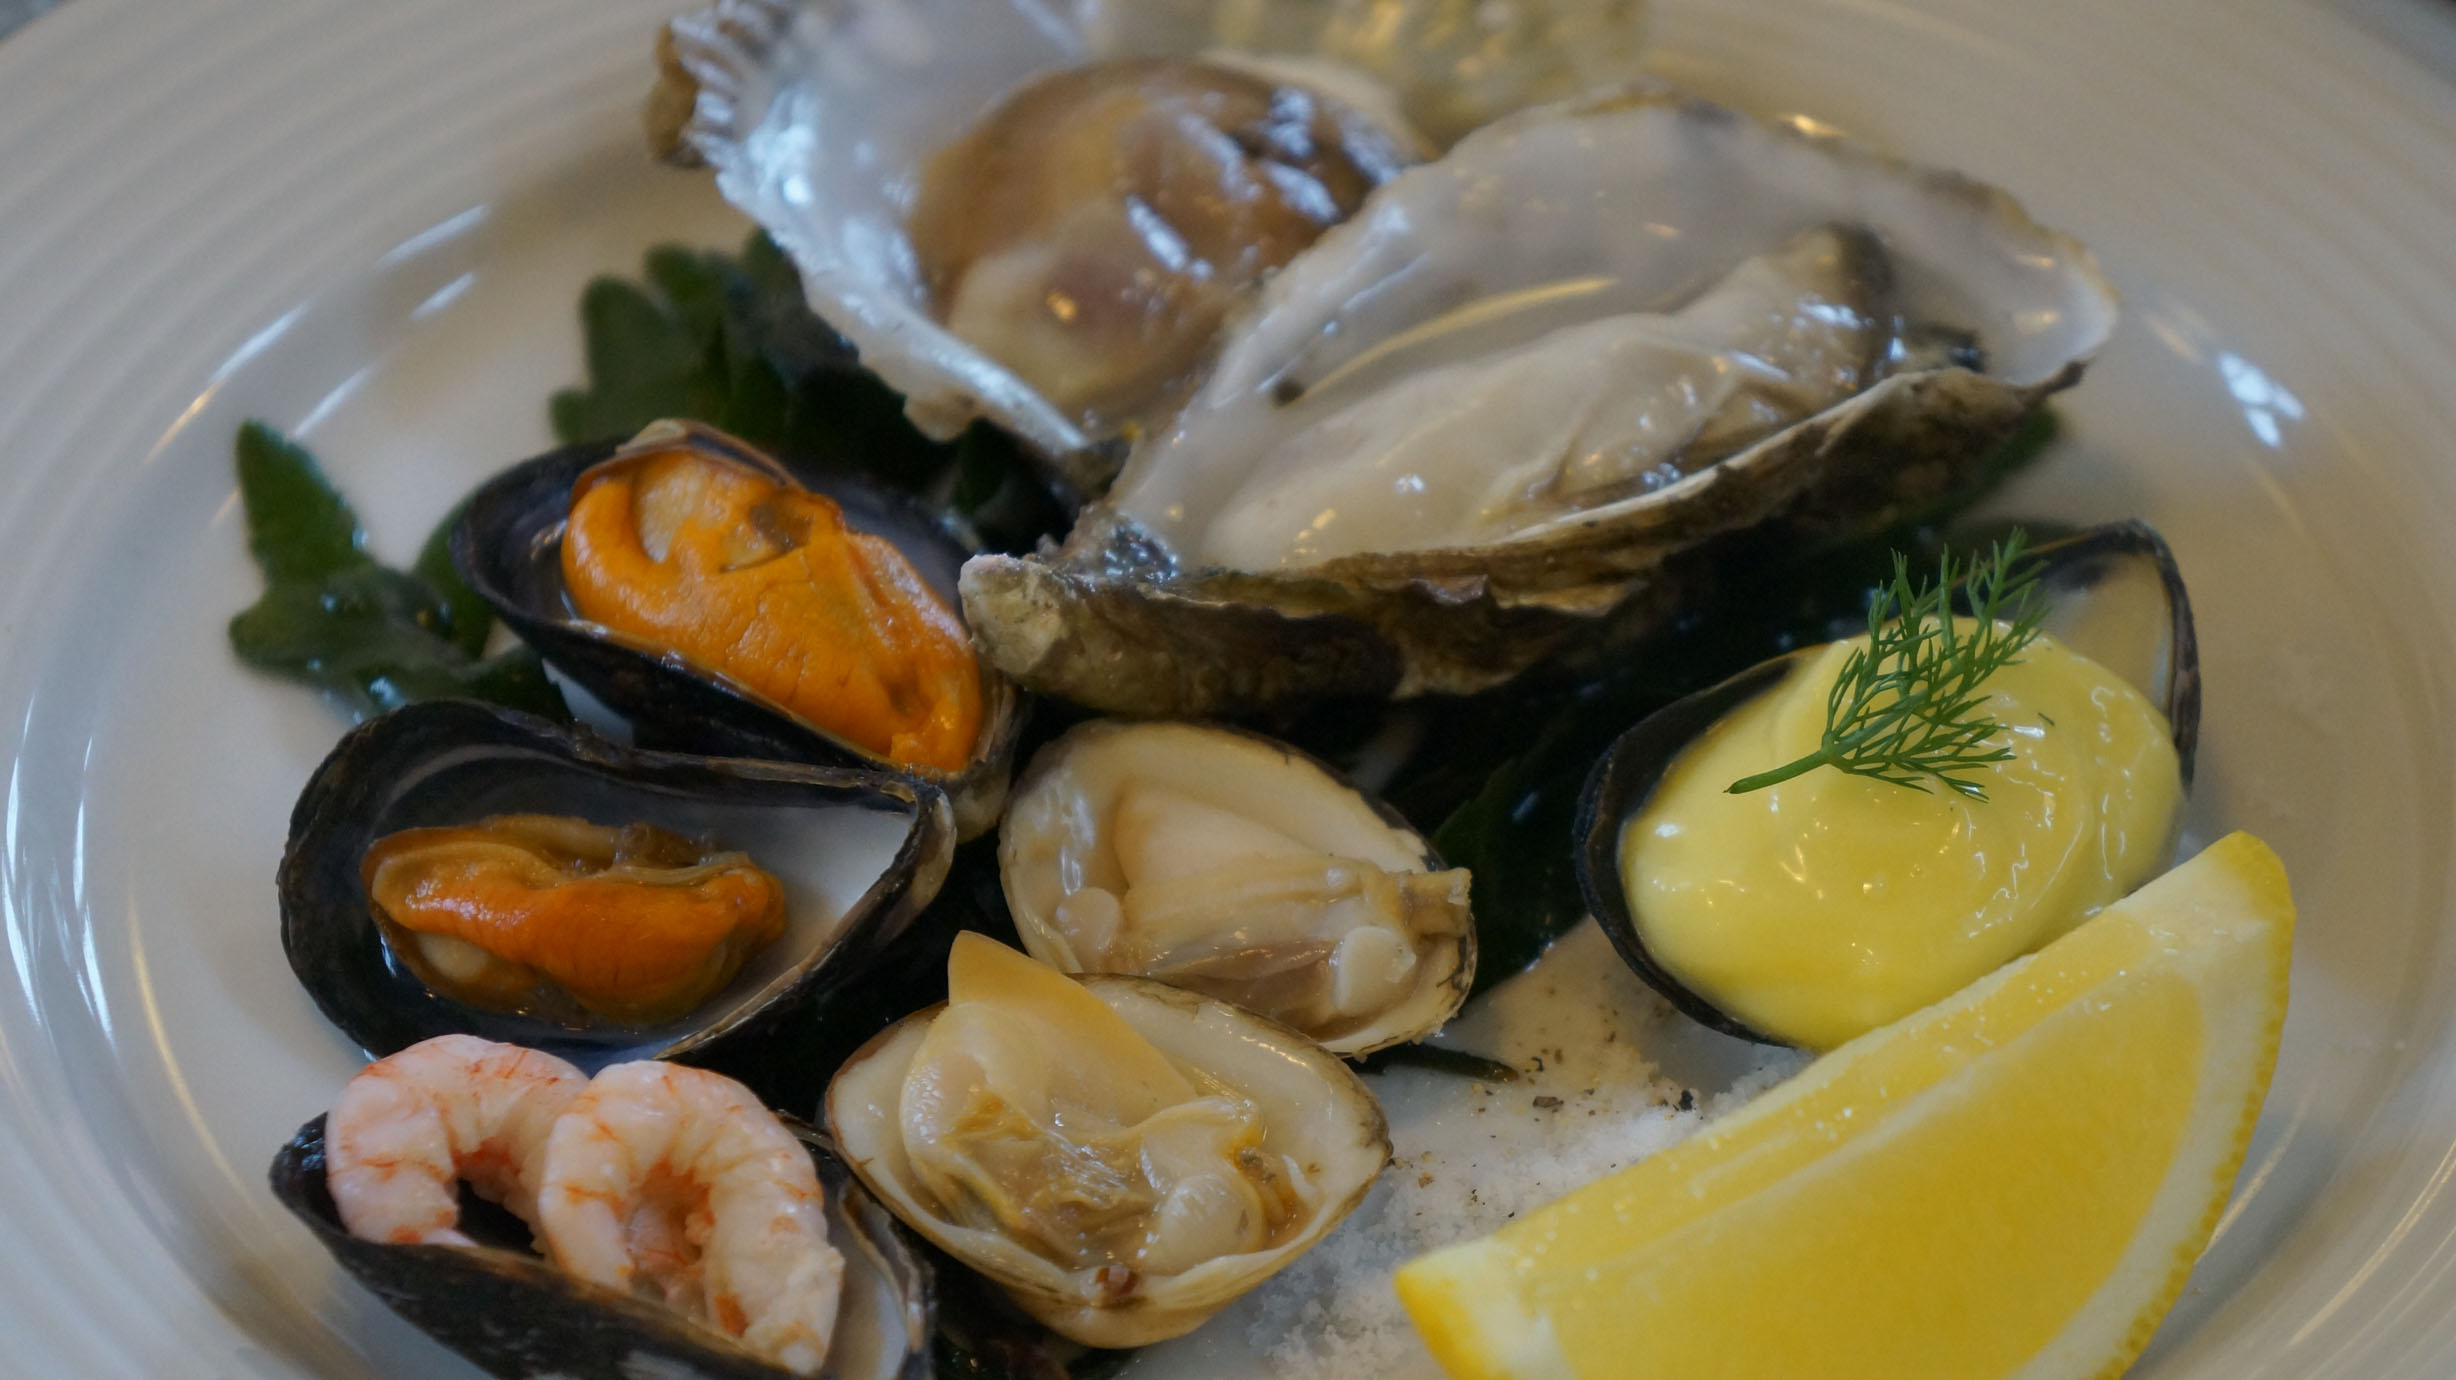 My seafood platter: Home Made Mayo, Oysters, Shrimp, Clams & Mussels